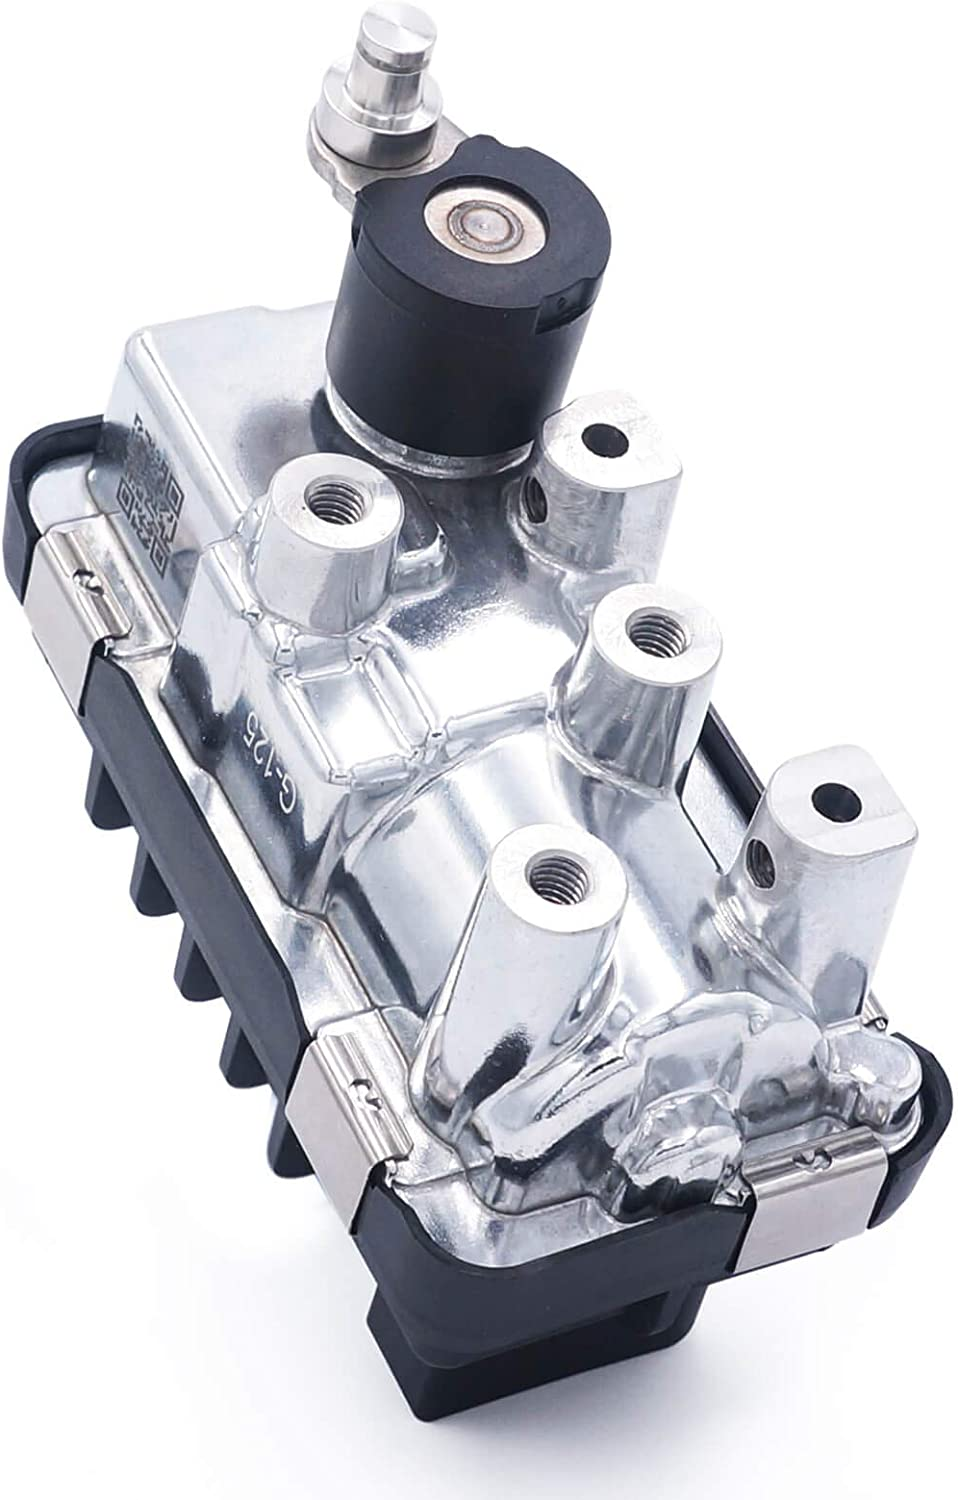 MicBen G-125 Turbo Electronic Actuator ETD-CAN For Turbo GT2260V 742730 Passed ATD-1//G3//Turboclinic EAT V3 Devices Test